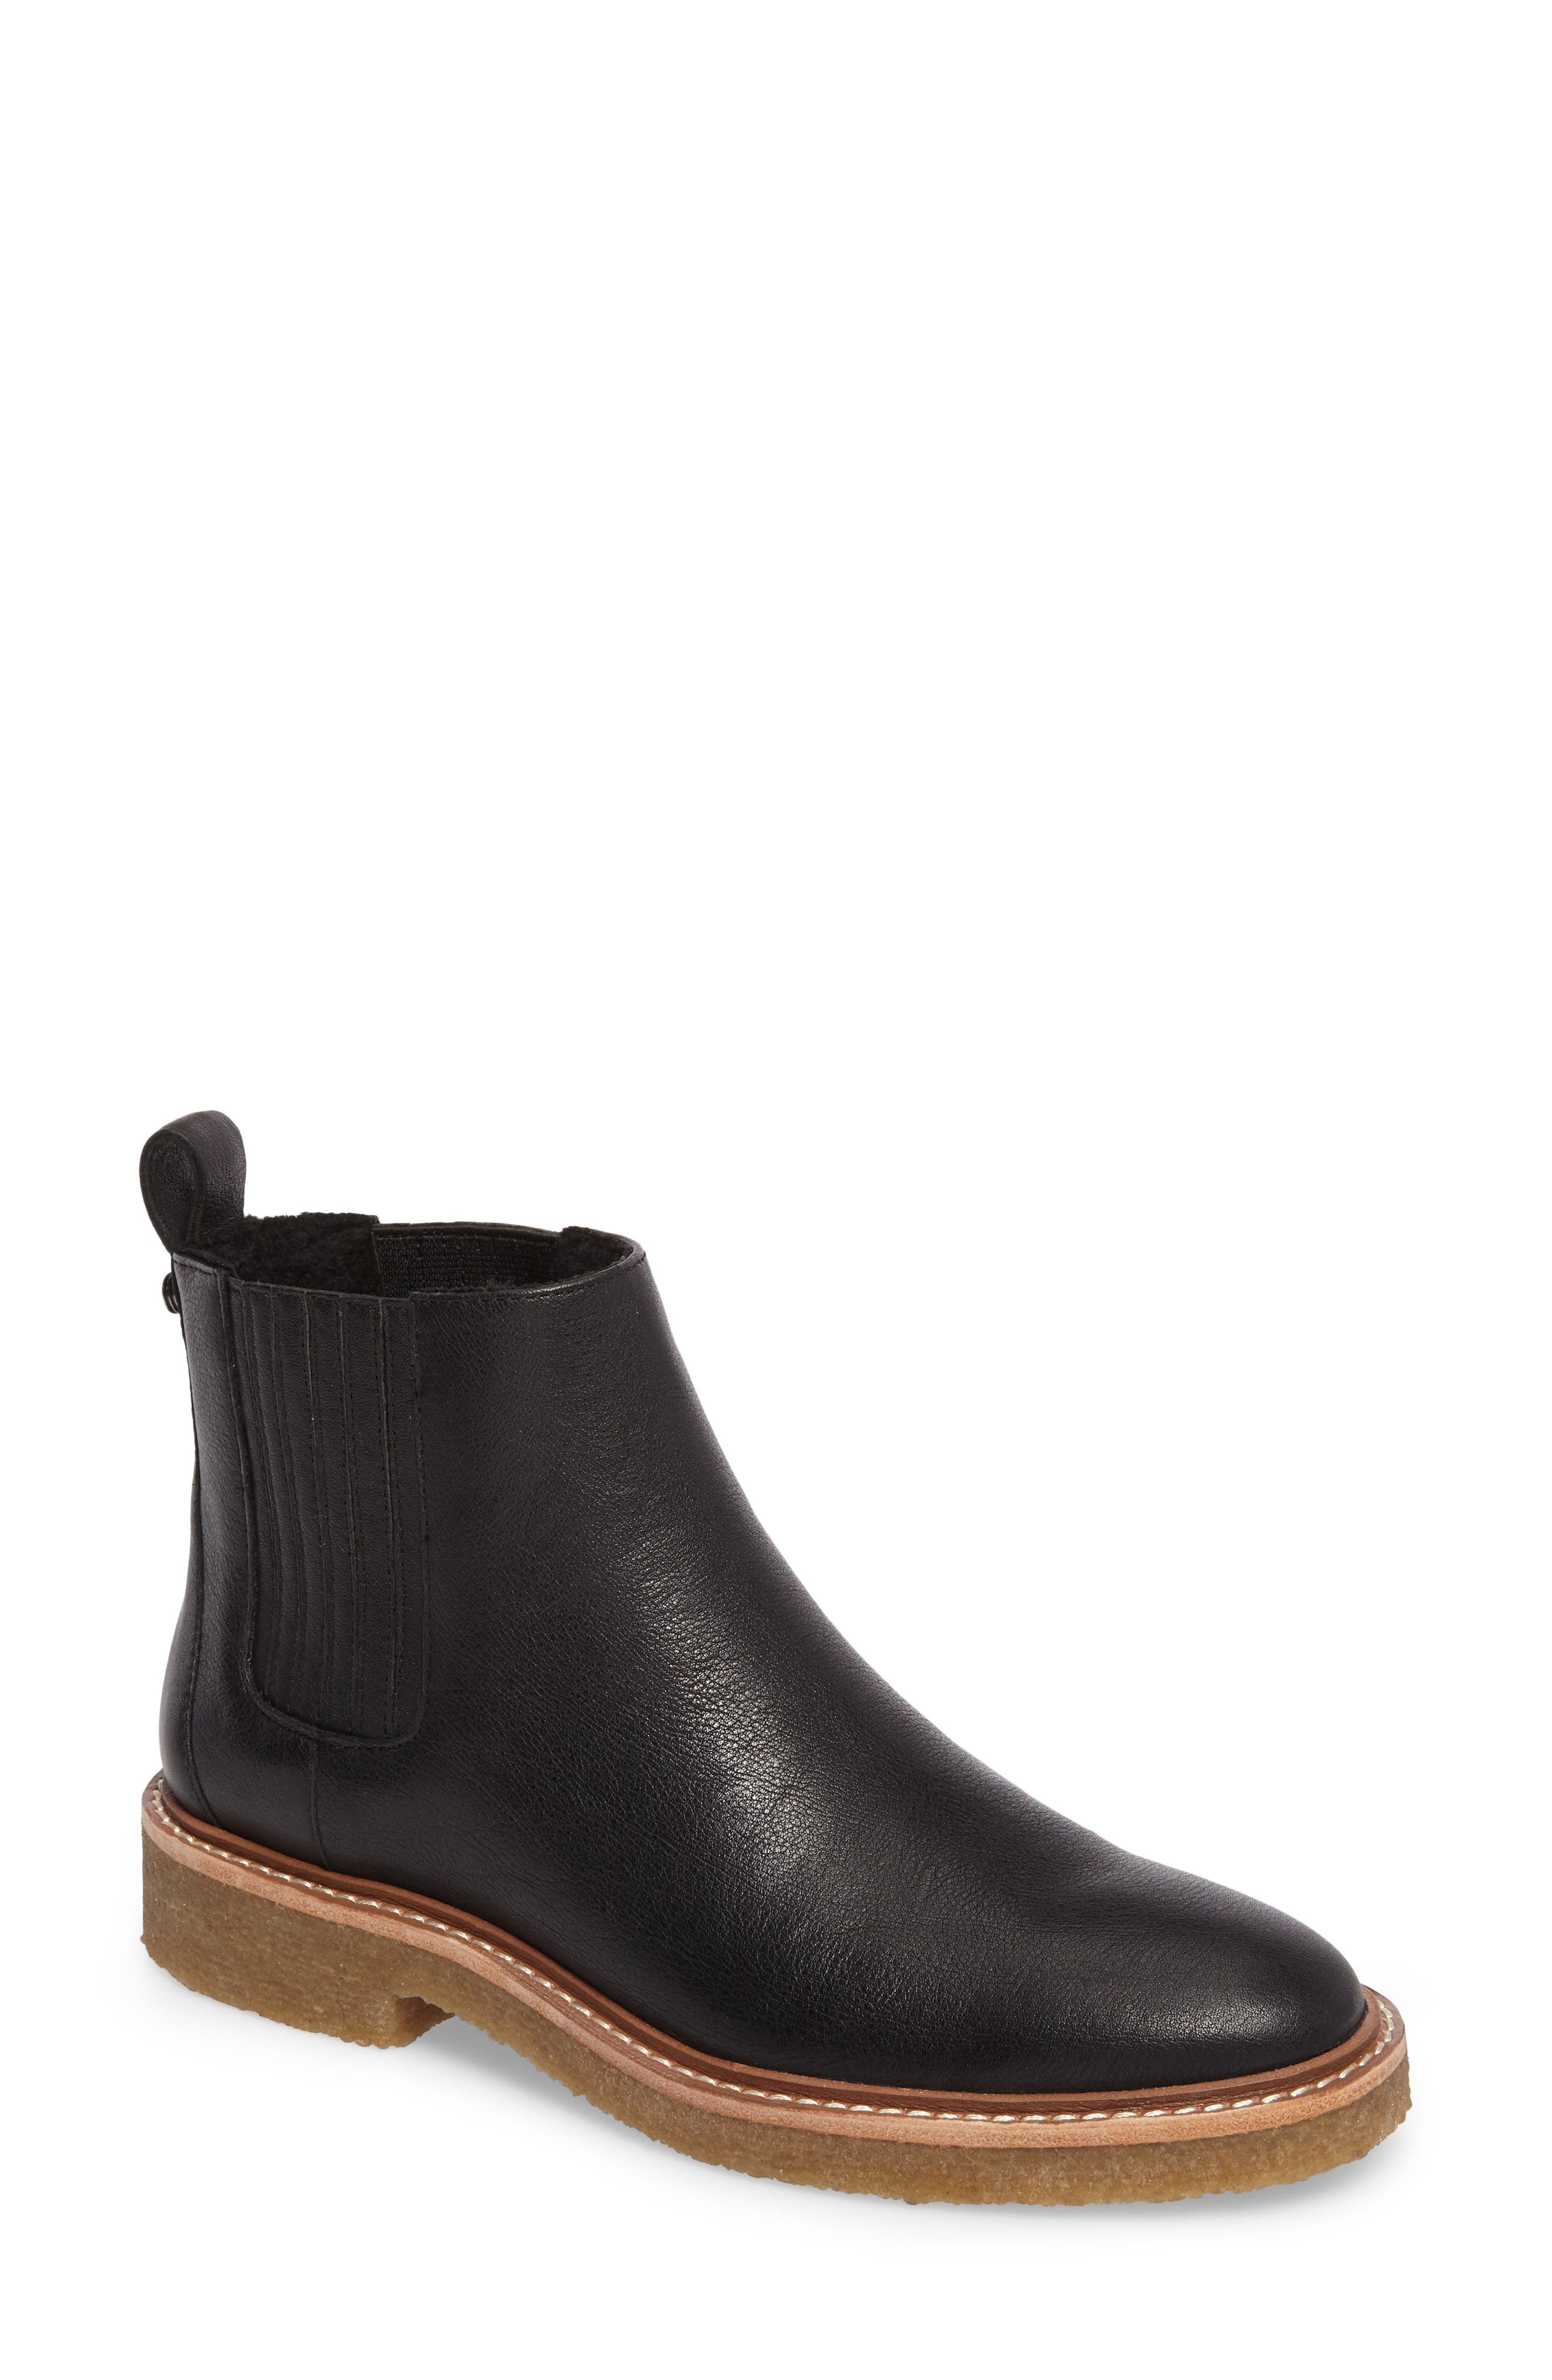 Chelsea Faux Shearling Lined Boot,                             Main thumbnail 1, color,                             BLACK LEATHER